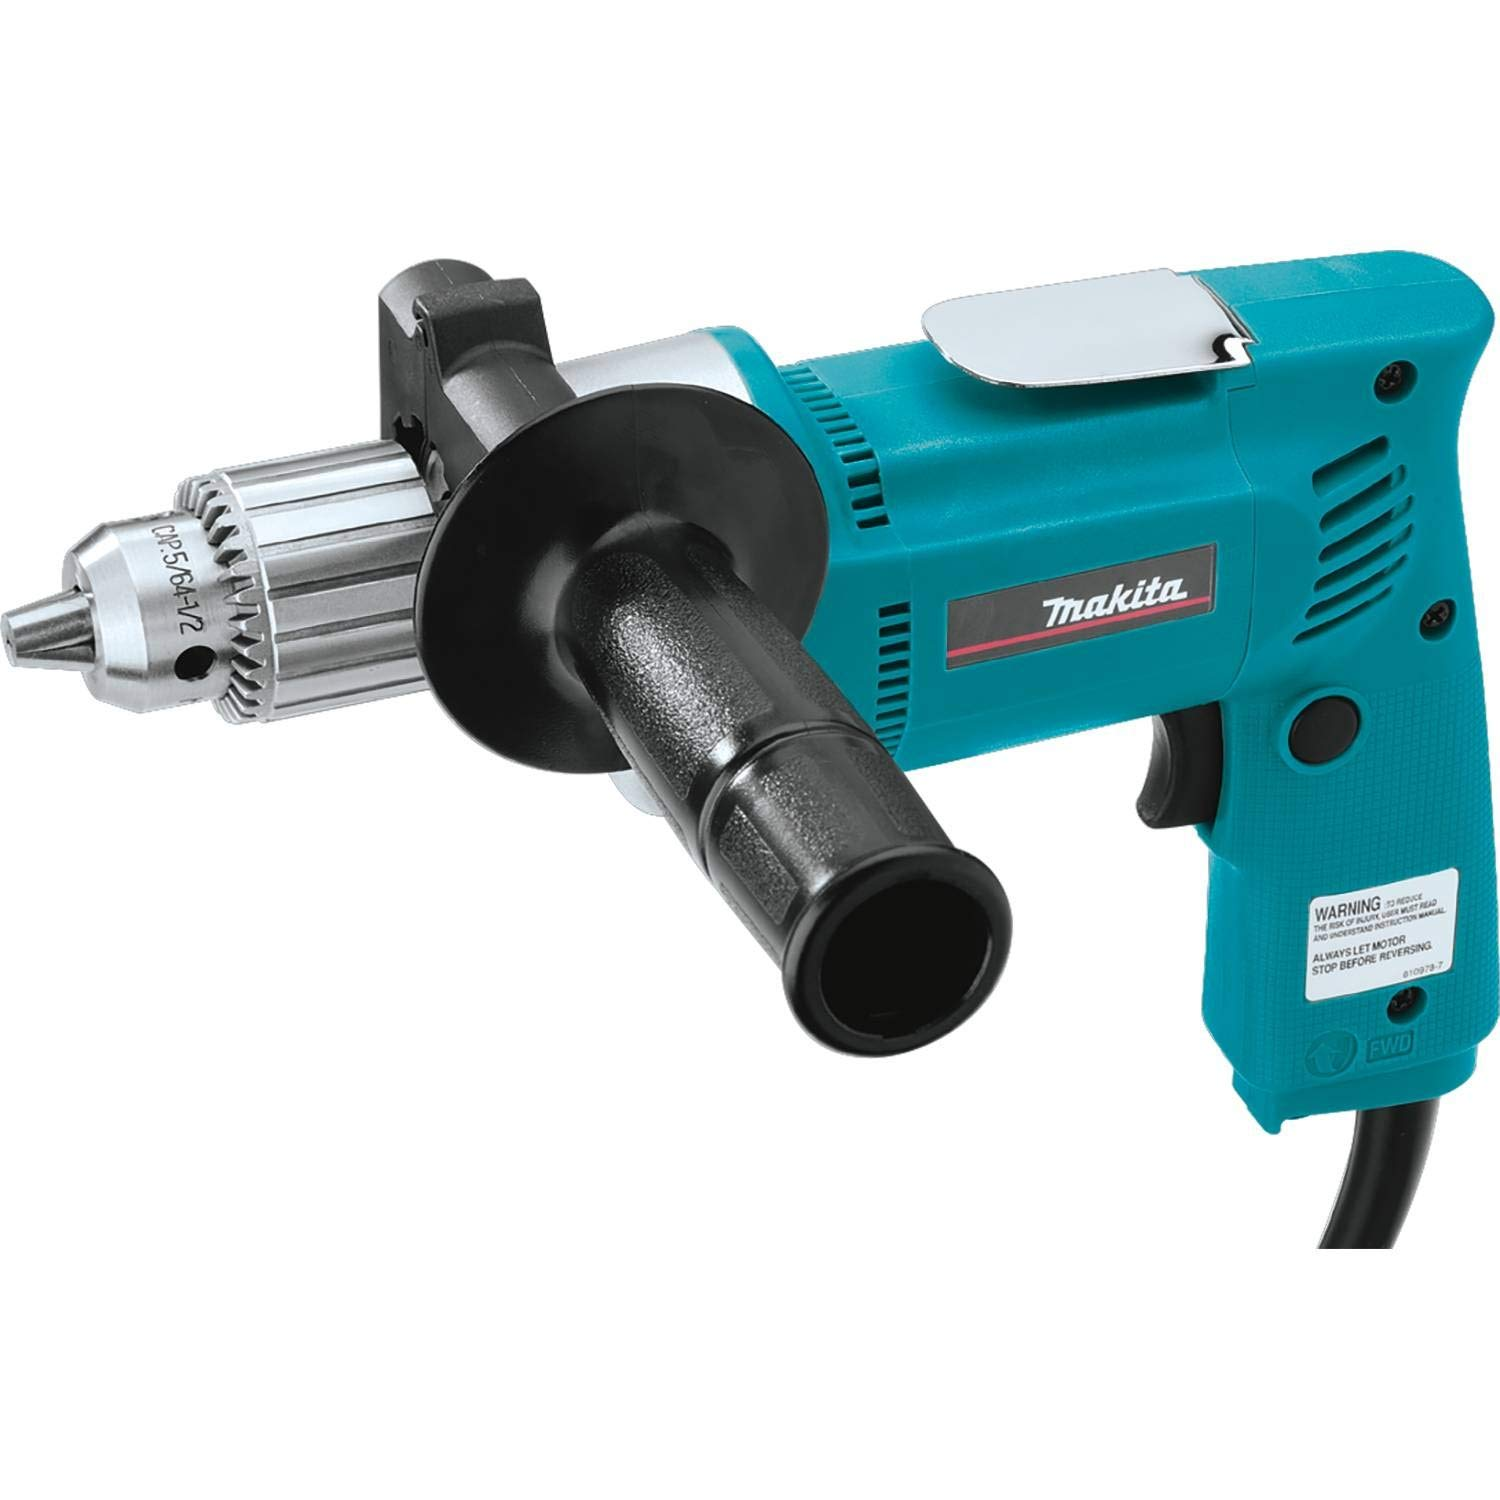 Electric Drill, 1 2 In, 0 to 550 rpm, 6.5A